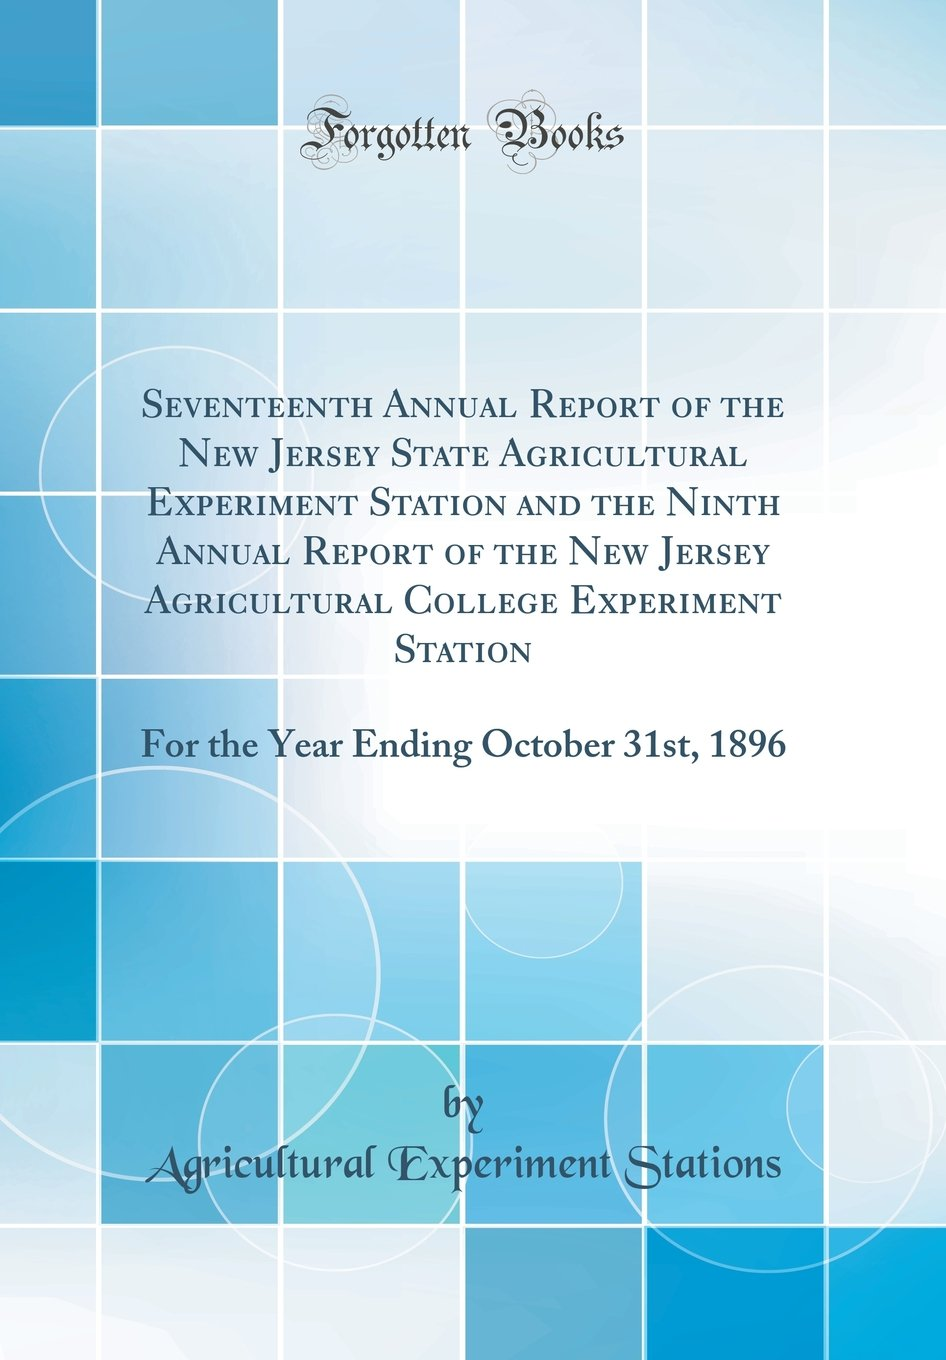 Download Seventeenth Annual Report of the New Jersey State Agricultural Experiment Station and the Ninth Annual Report of the New Jersey Agricultural College ... Ending October 31st, 1896 (Classic Reprint) PDF